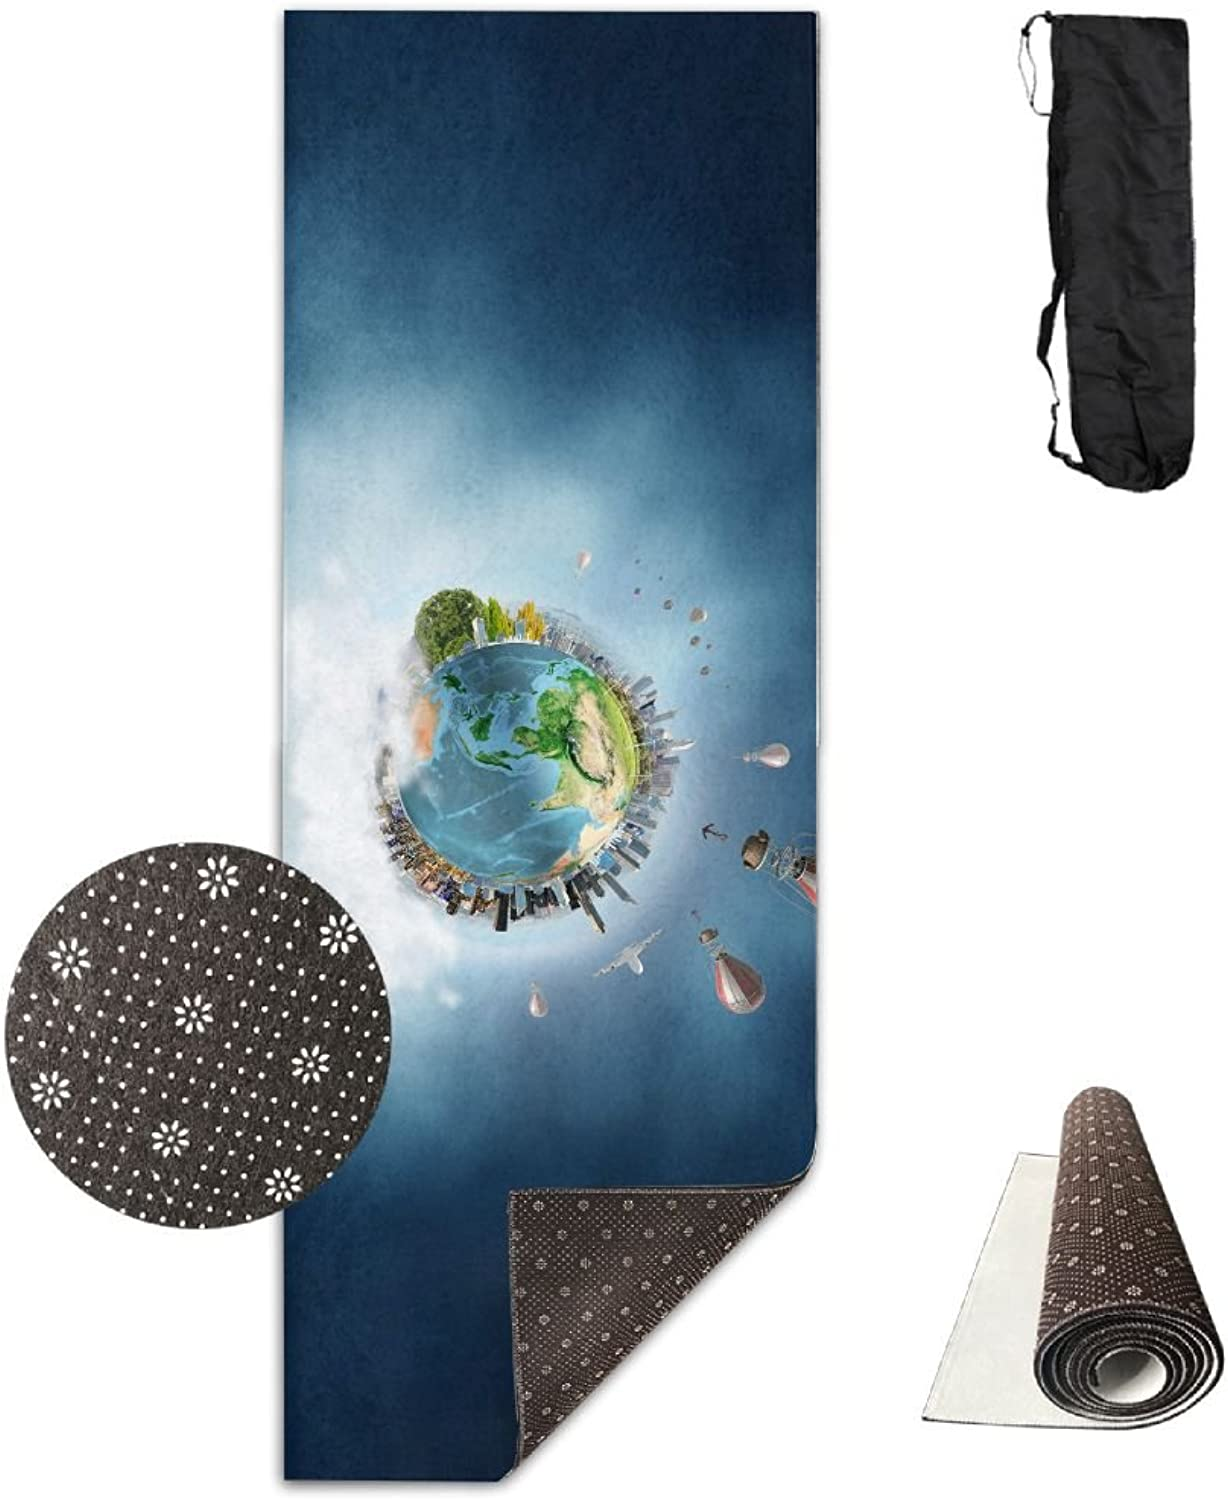 BINGZHAO 3D Floating Island Exercise Yoga Mat for Pilates,Gym,Fitness, Travel & Hiking